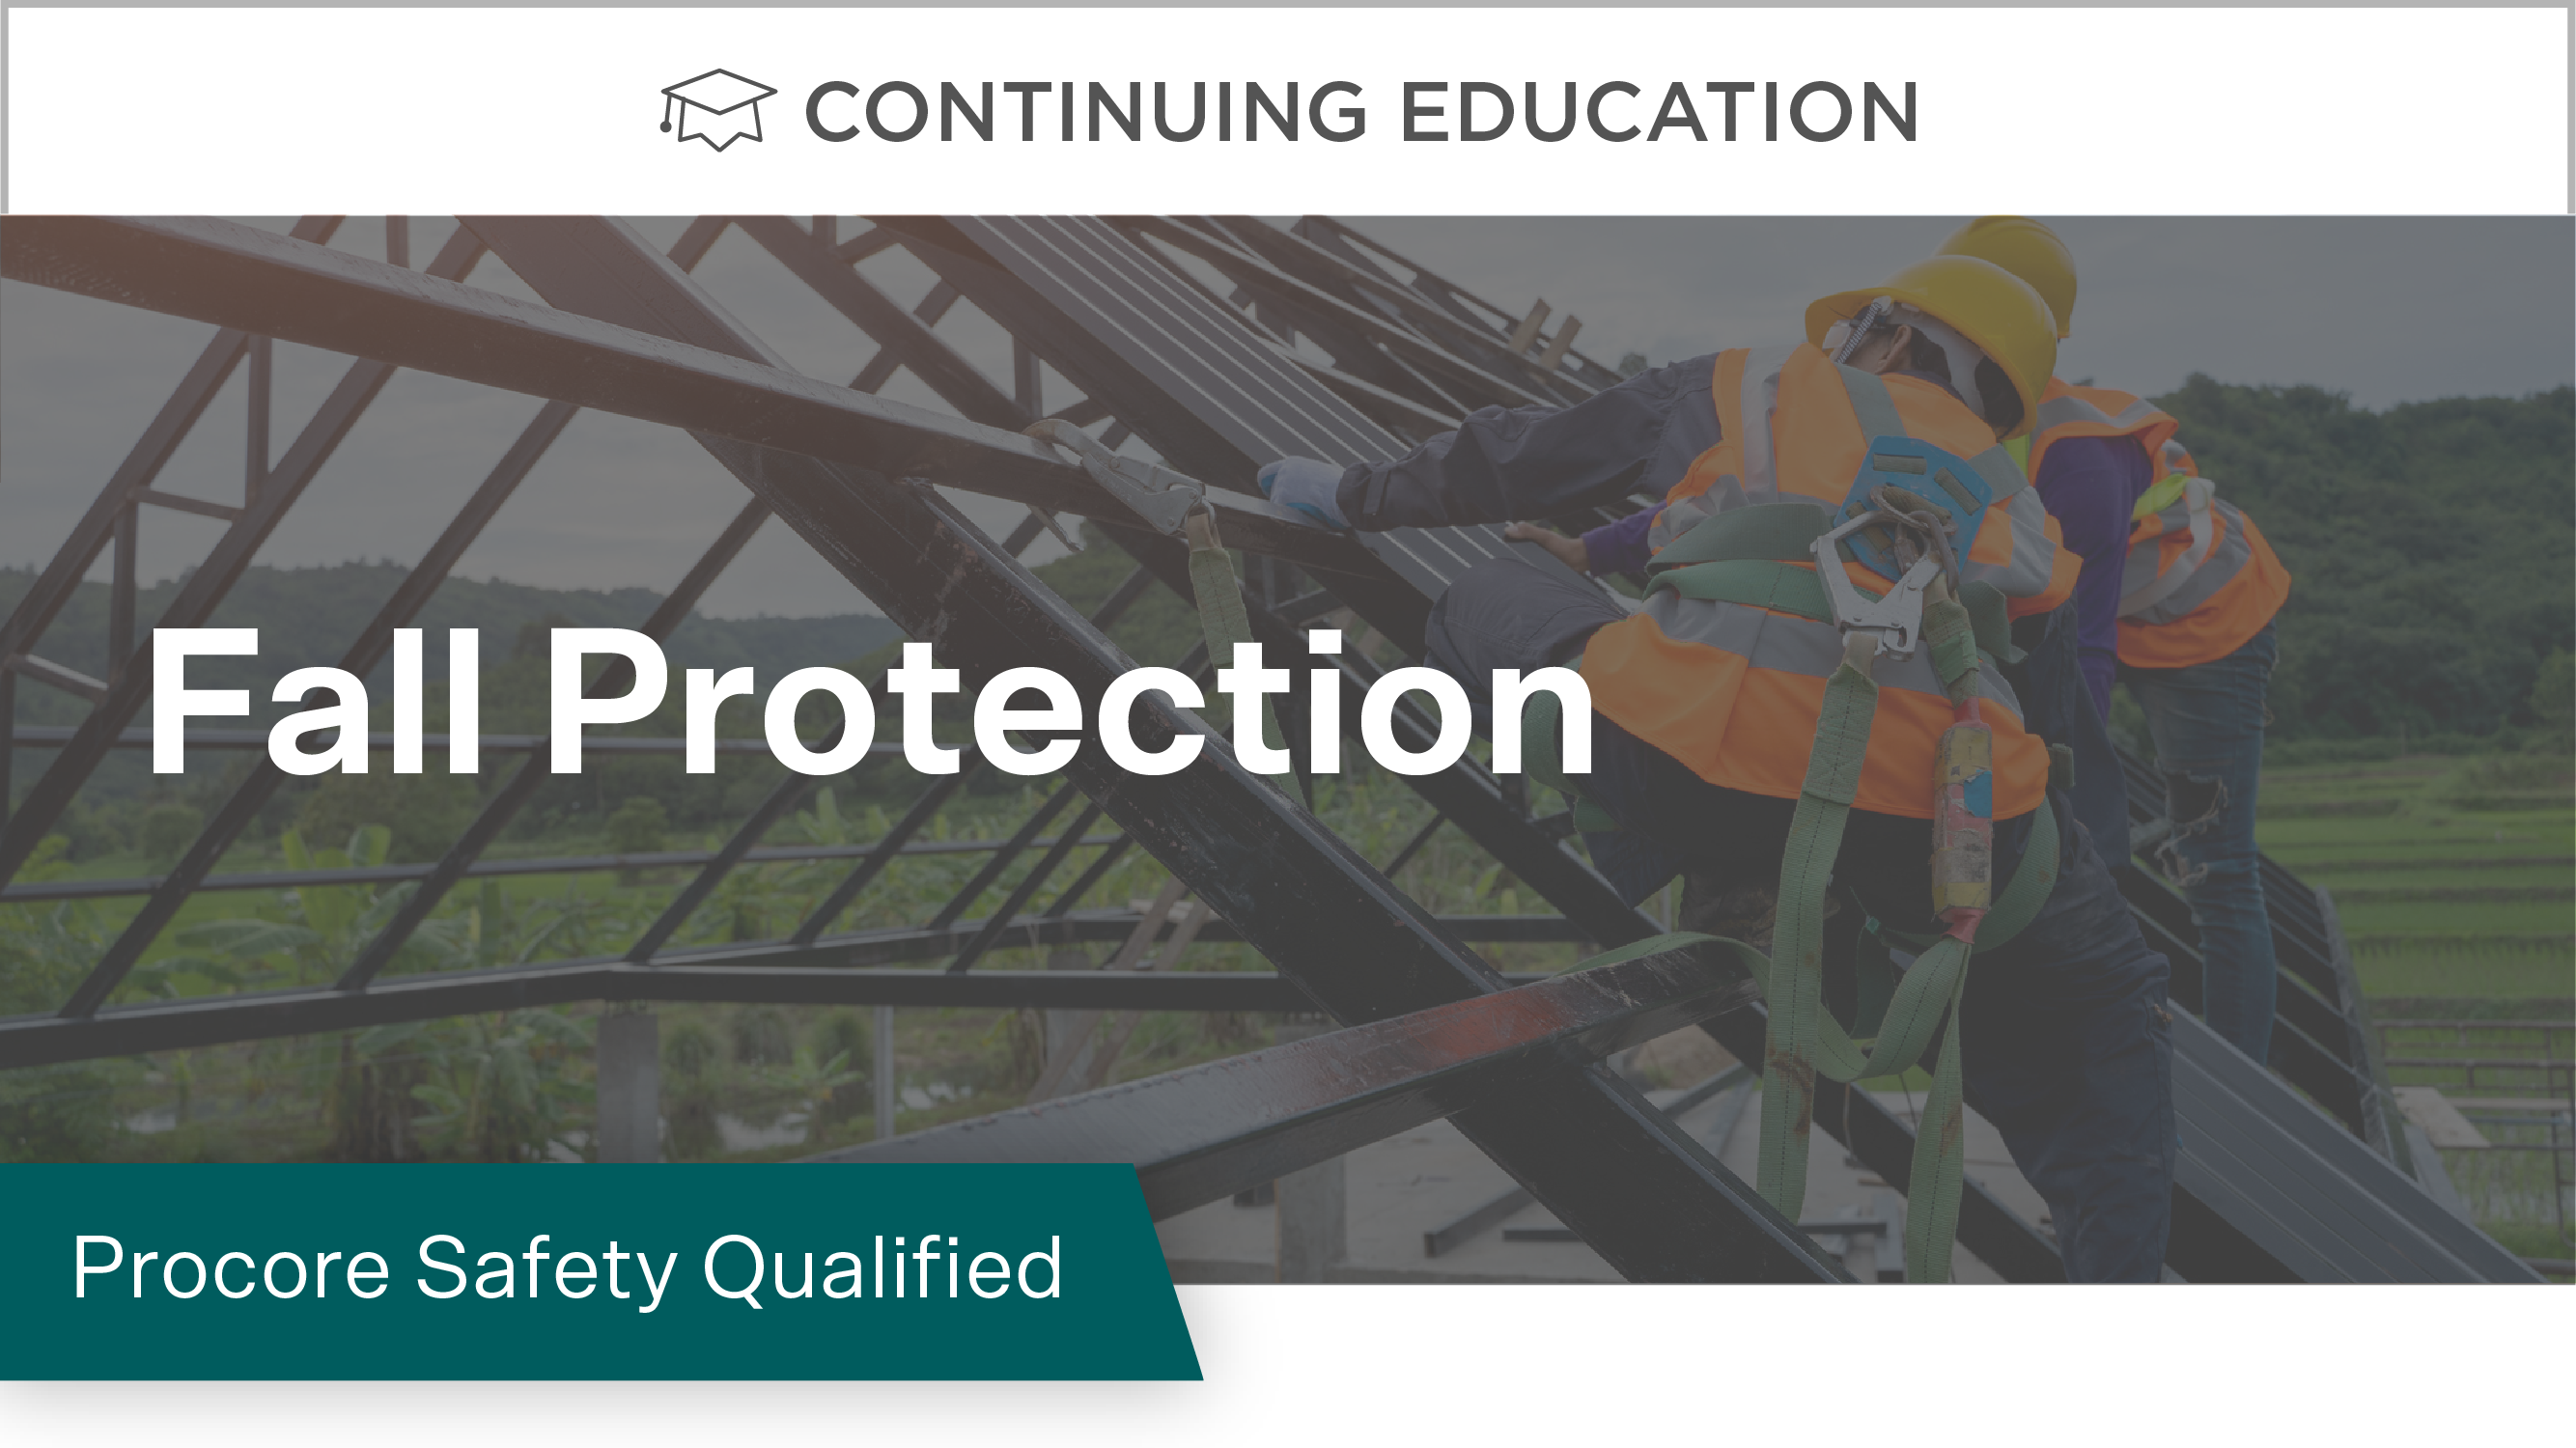 Procore Safety Qualified: Fall Protection